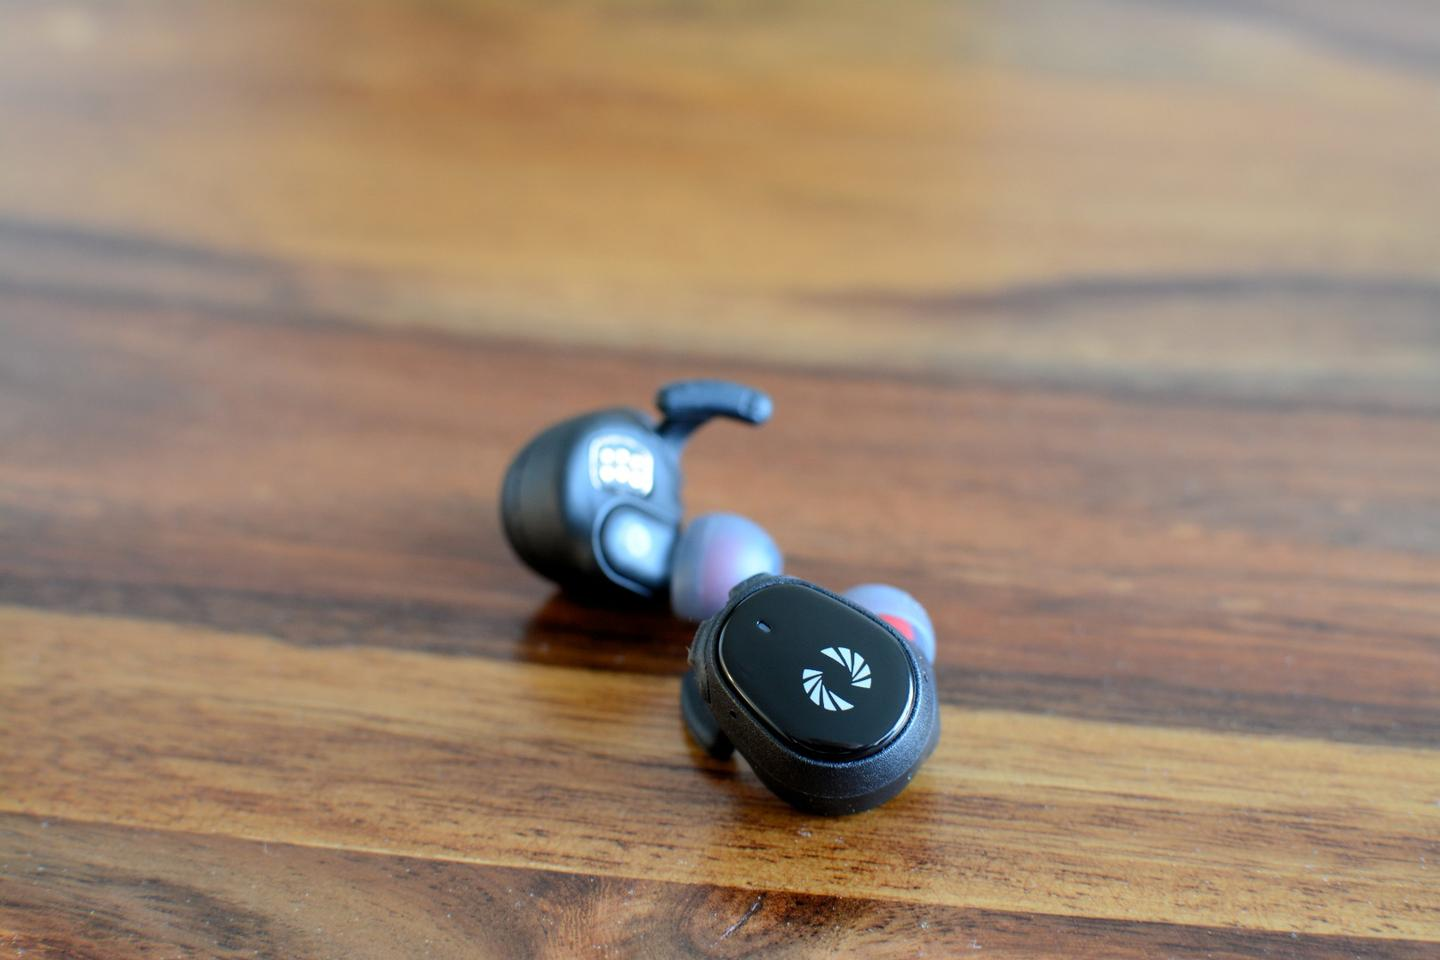 The Bolt BT 700 earphones wirelessly connect to each other when removed from the charging case, and enter Bluetooth pairing mode